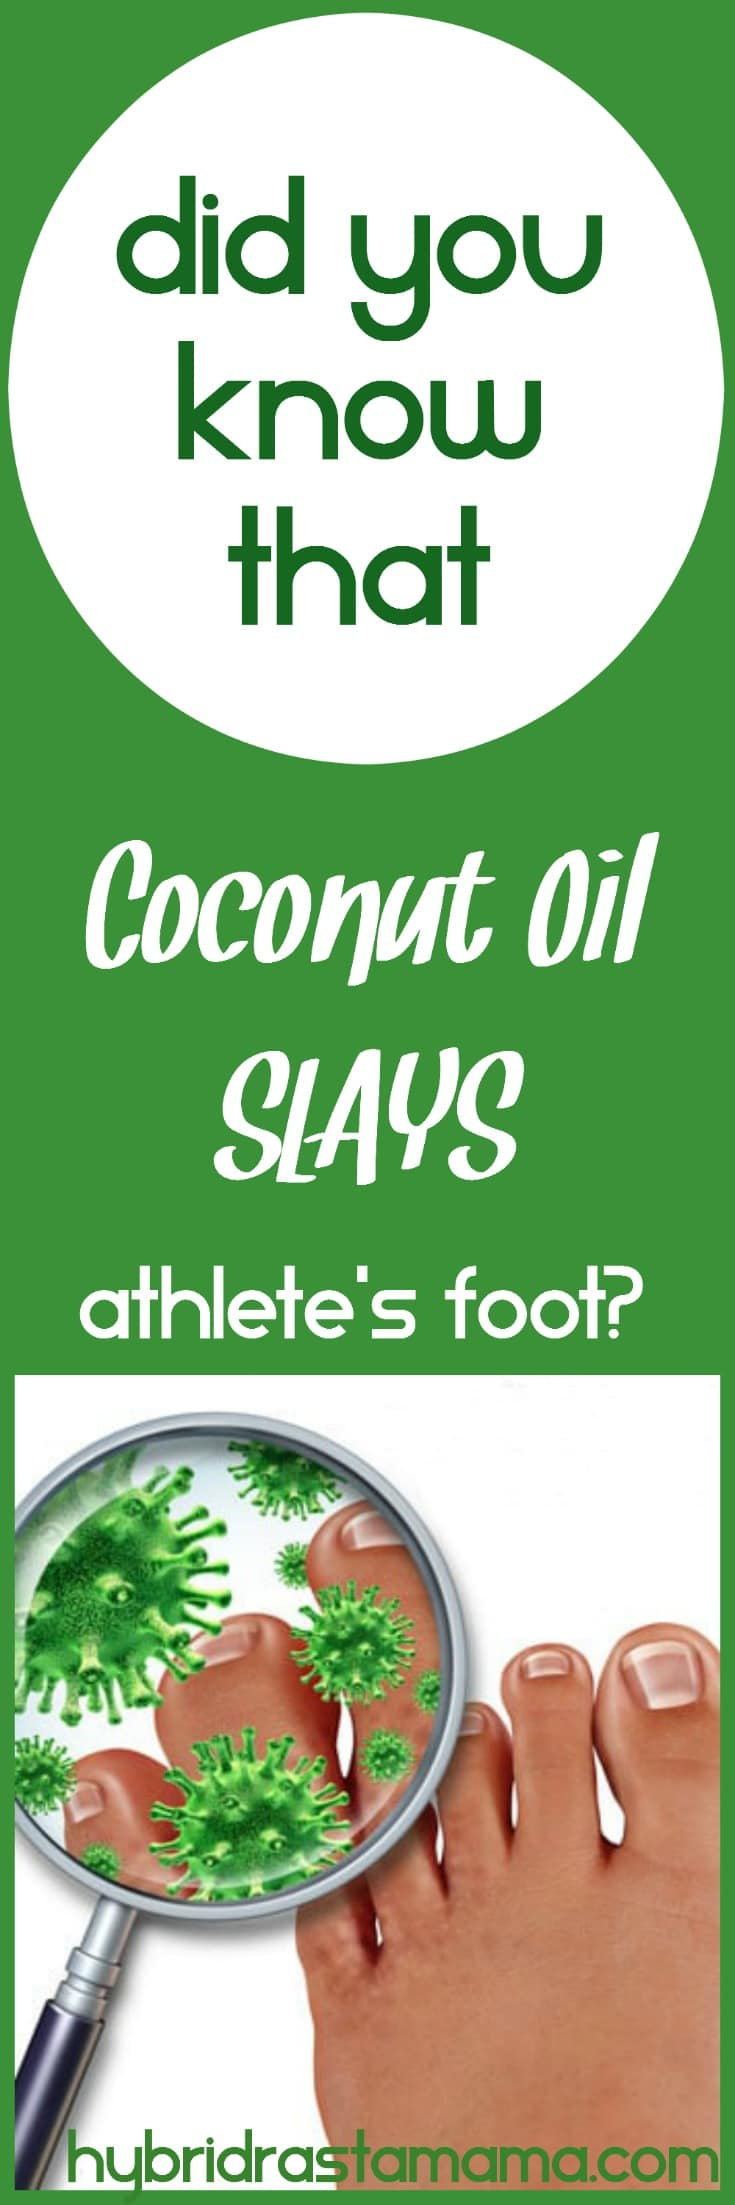 Athlete's Foot...something no one wants to battle. Did you know that coconut oil can assist in the prevention and elimination of athlete's foot? Come learn more in this post from HybridRastaMama.com